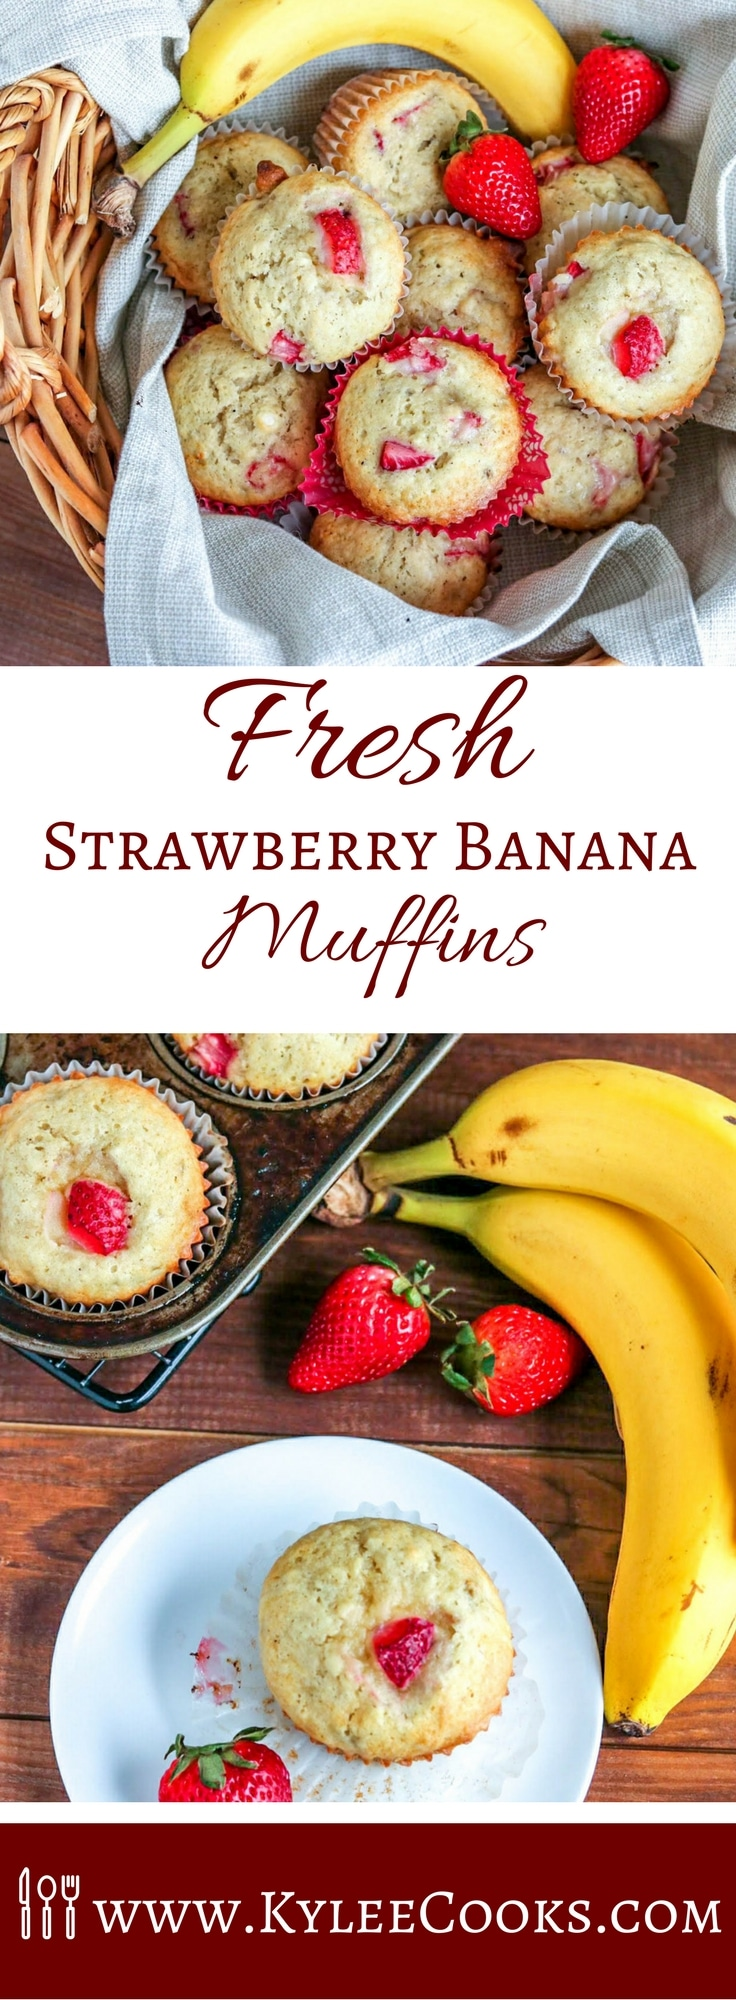 These delicious strawberry banana muffins are packed full of fresh flavors, and last about 5 minutes after coming out of the oven! They'll be devoured FAST! #muffins #strawberry #banana #breakfast